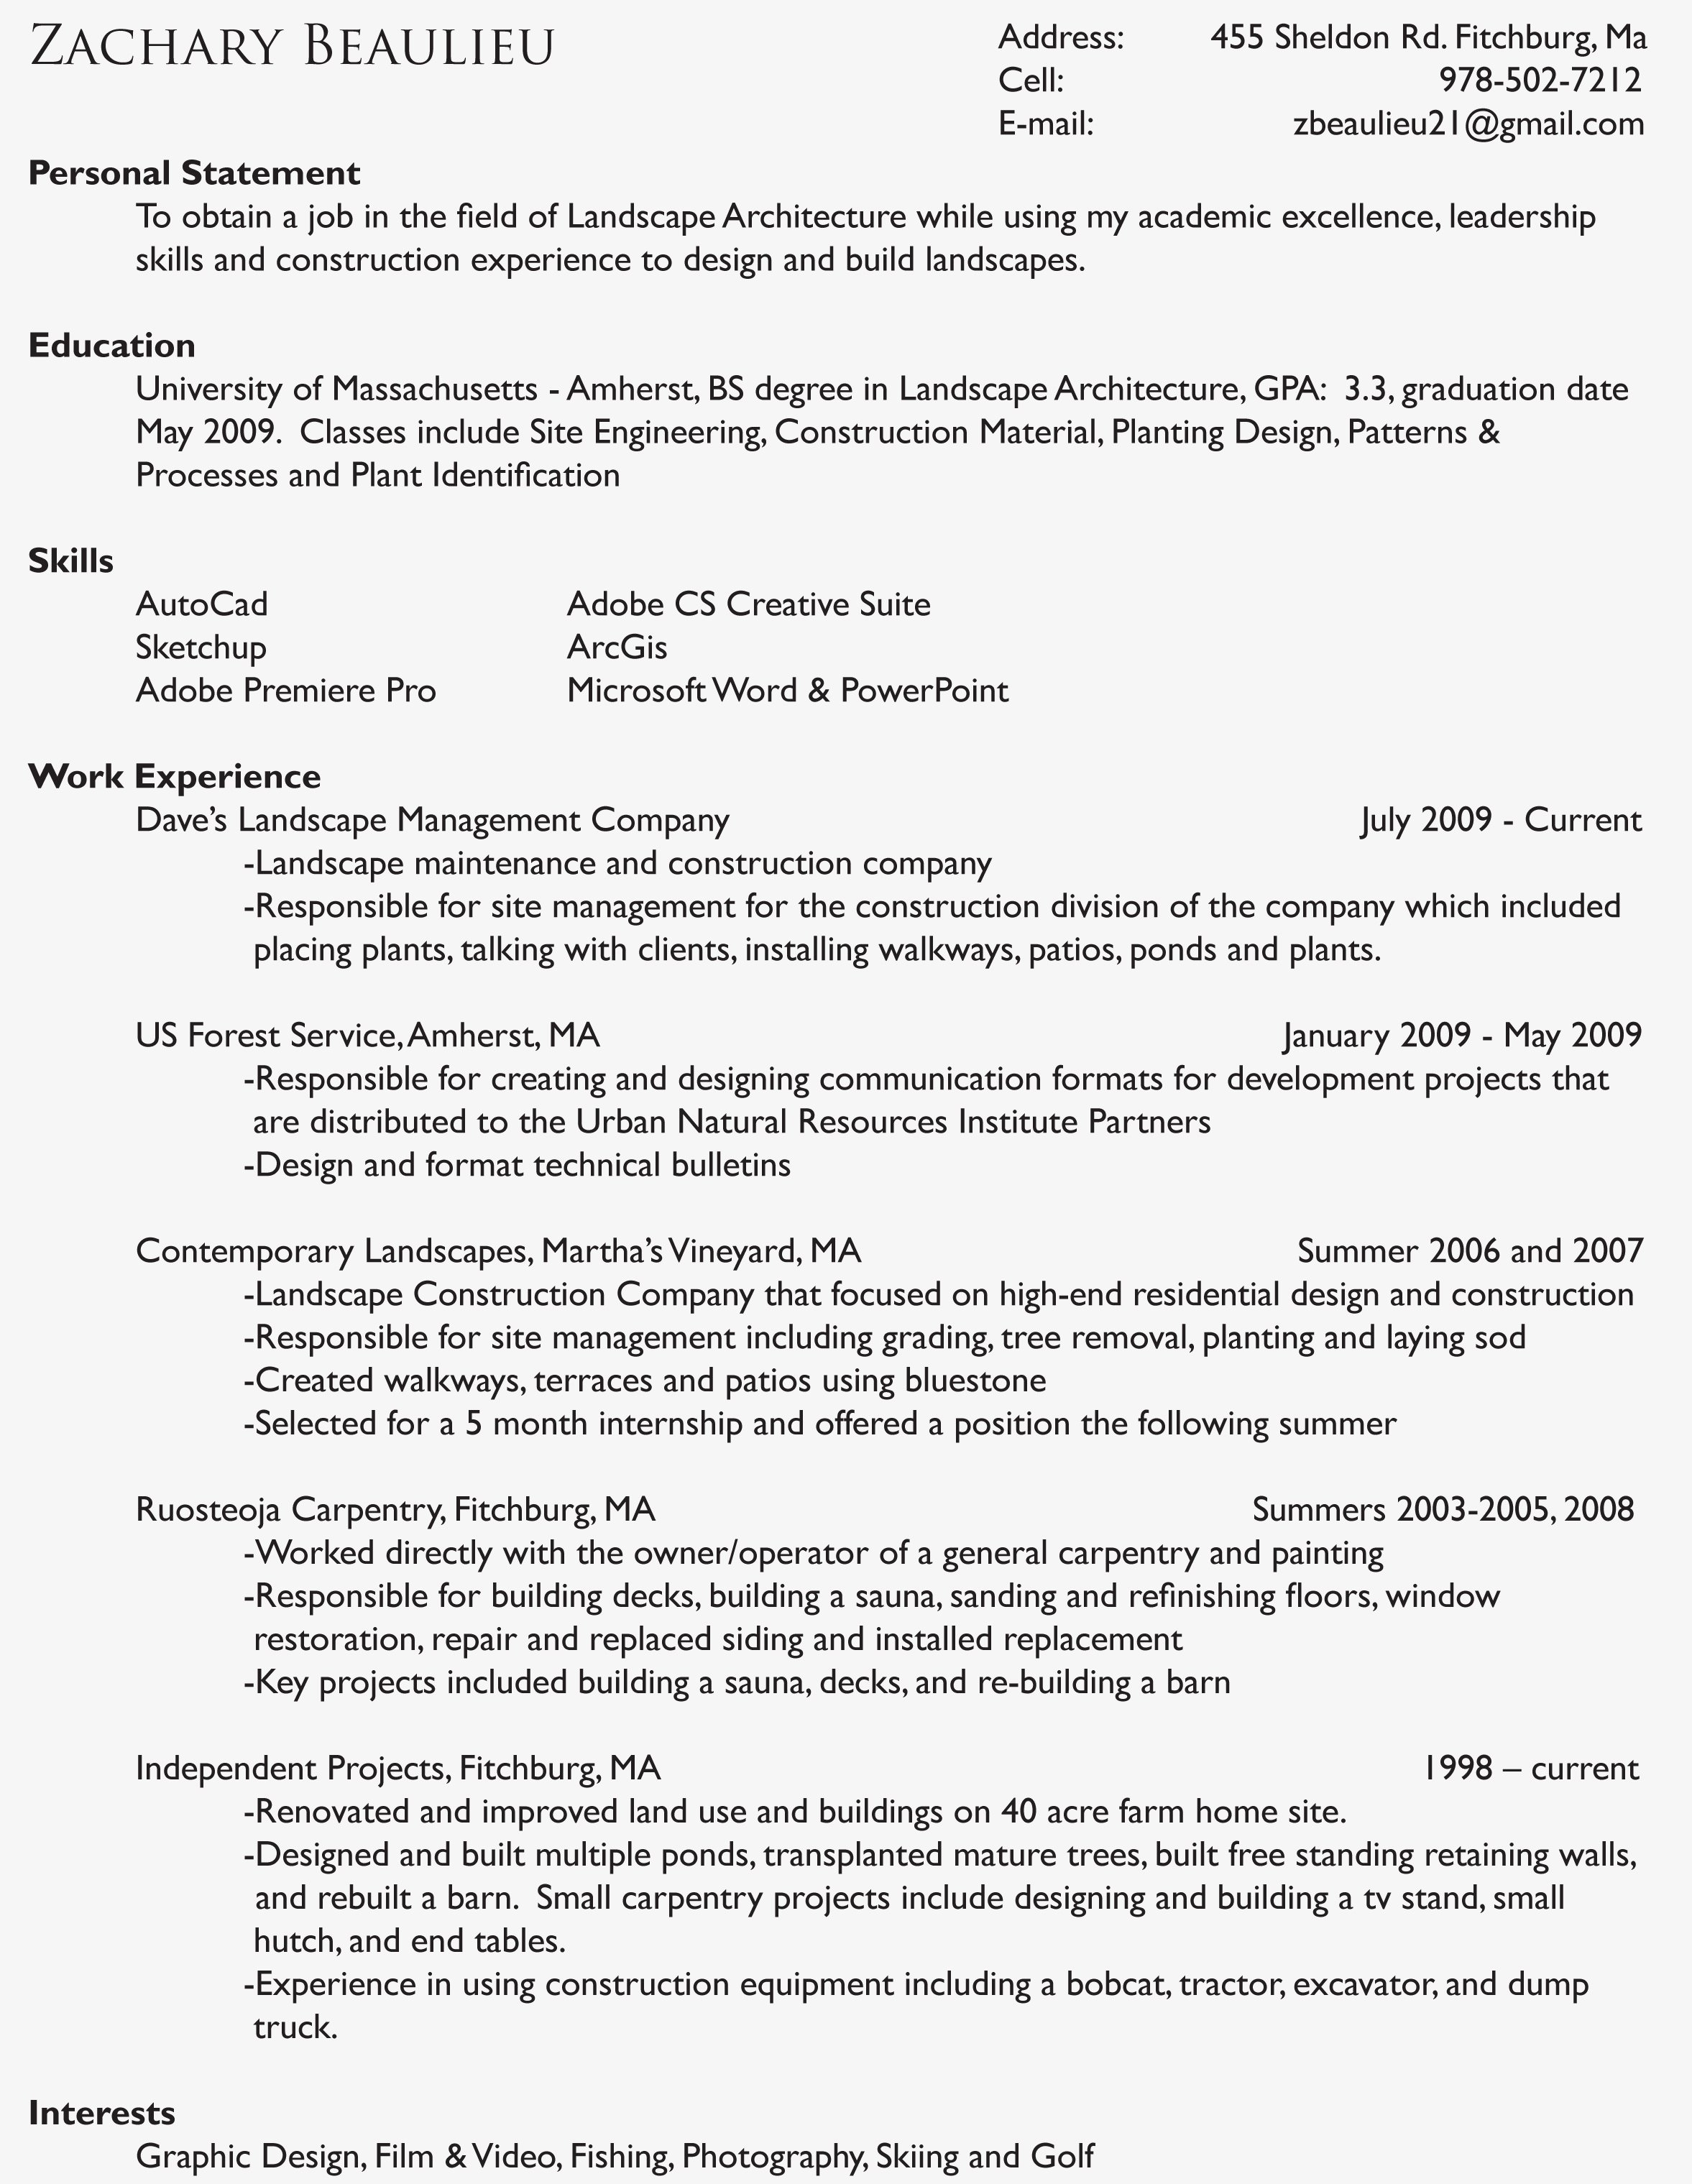 Landscaping Scope Of Work Template Lovely Guide and How to Do Landscaping Resumes